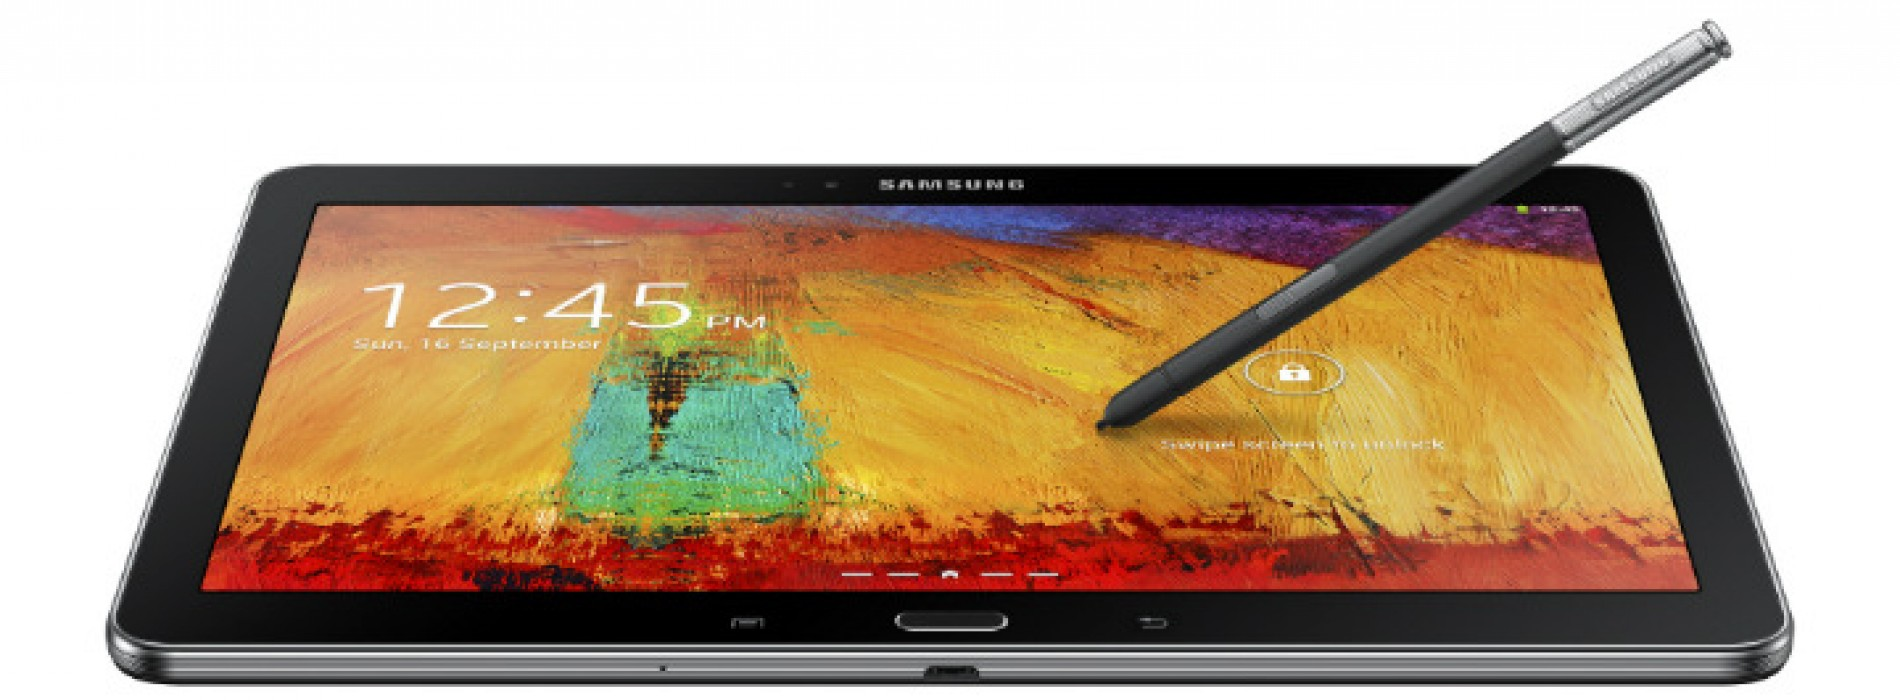 Samsung Galaxy Note 10.1 2014 Edition arrives October 10